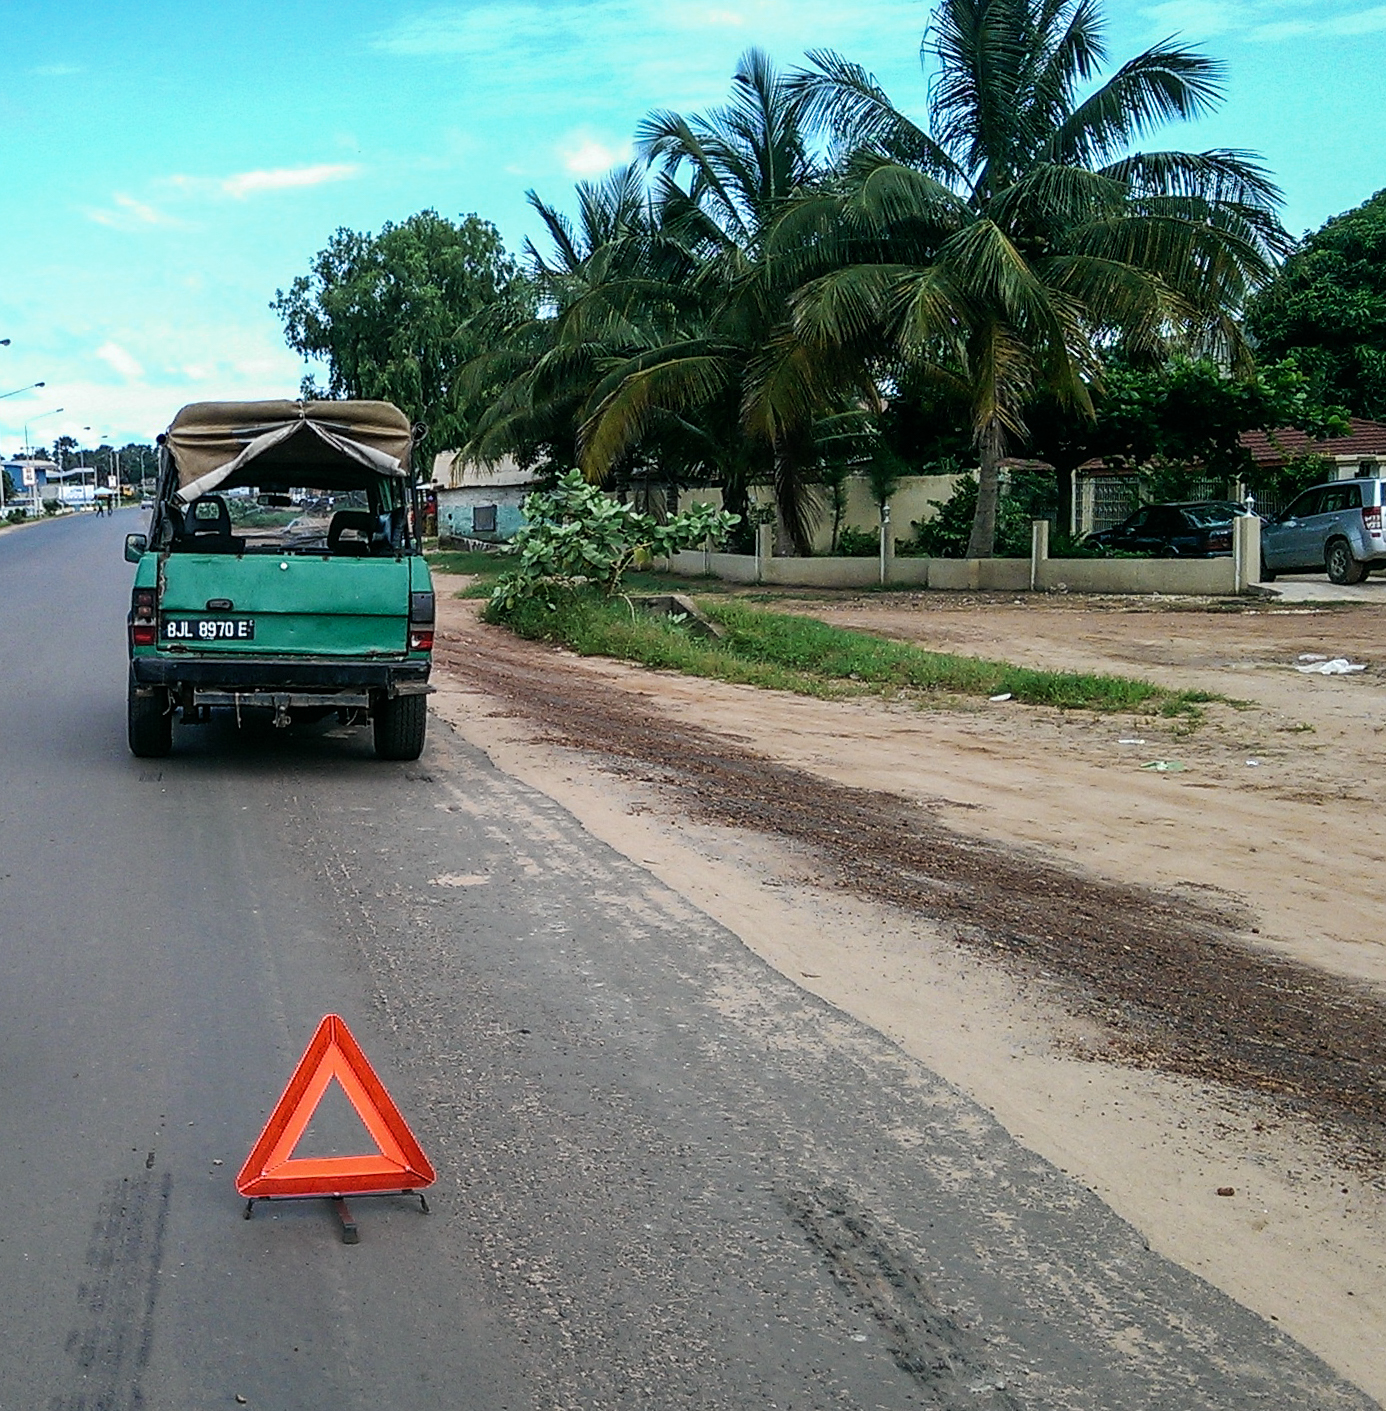 Green taxi in Gambia